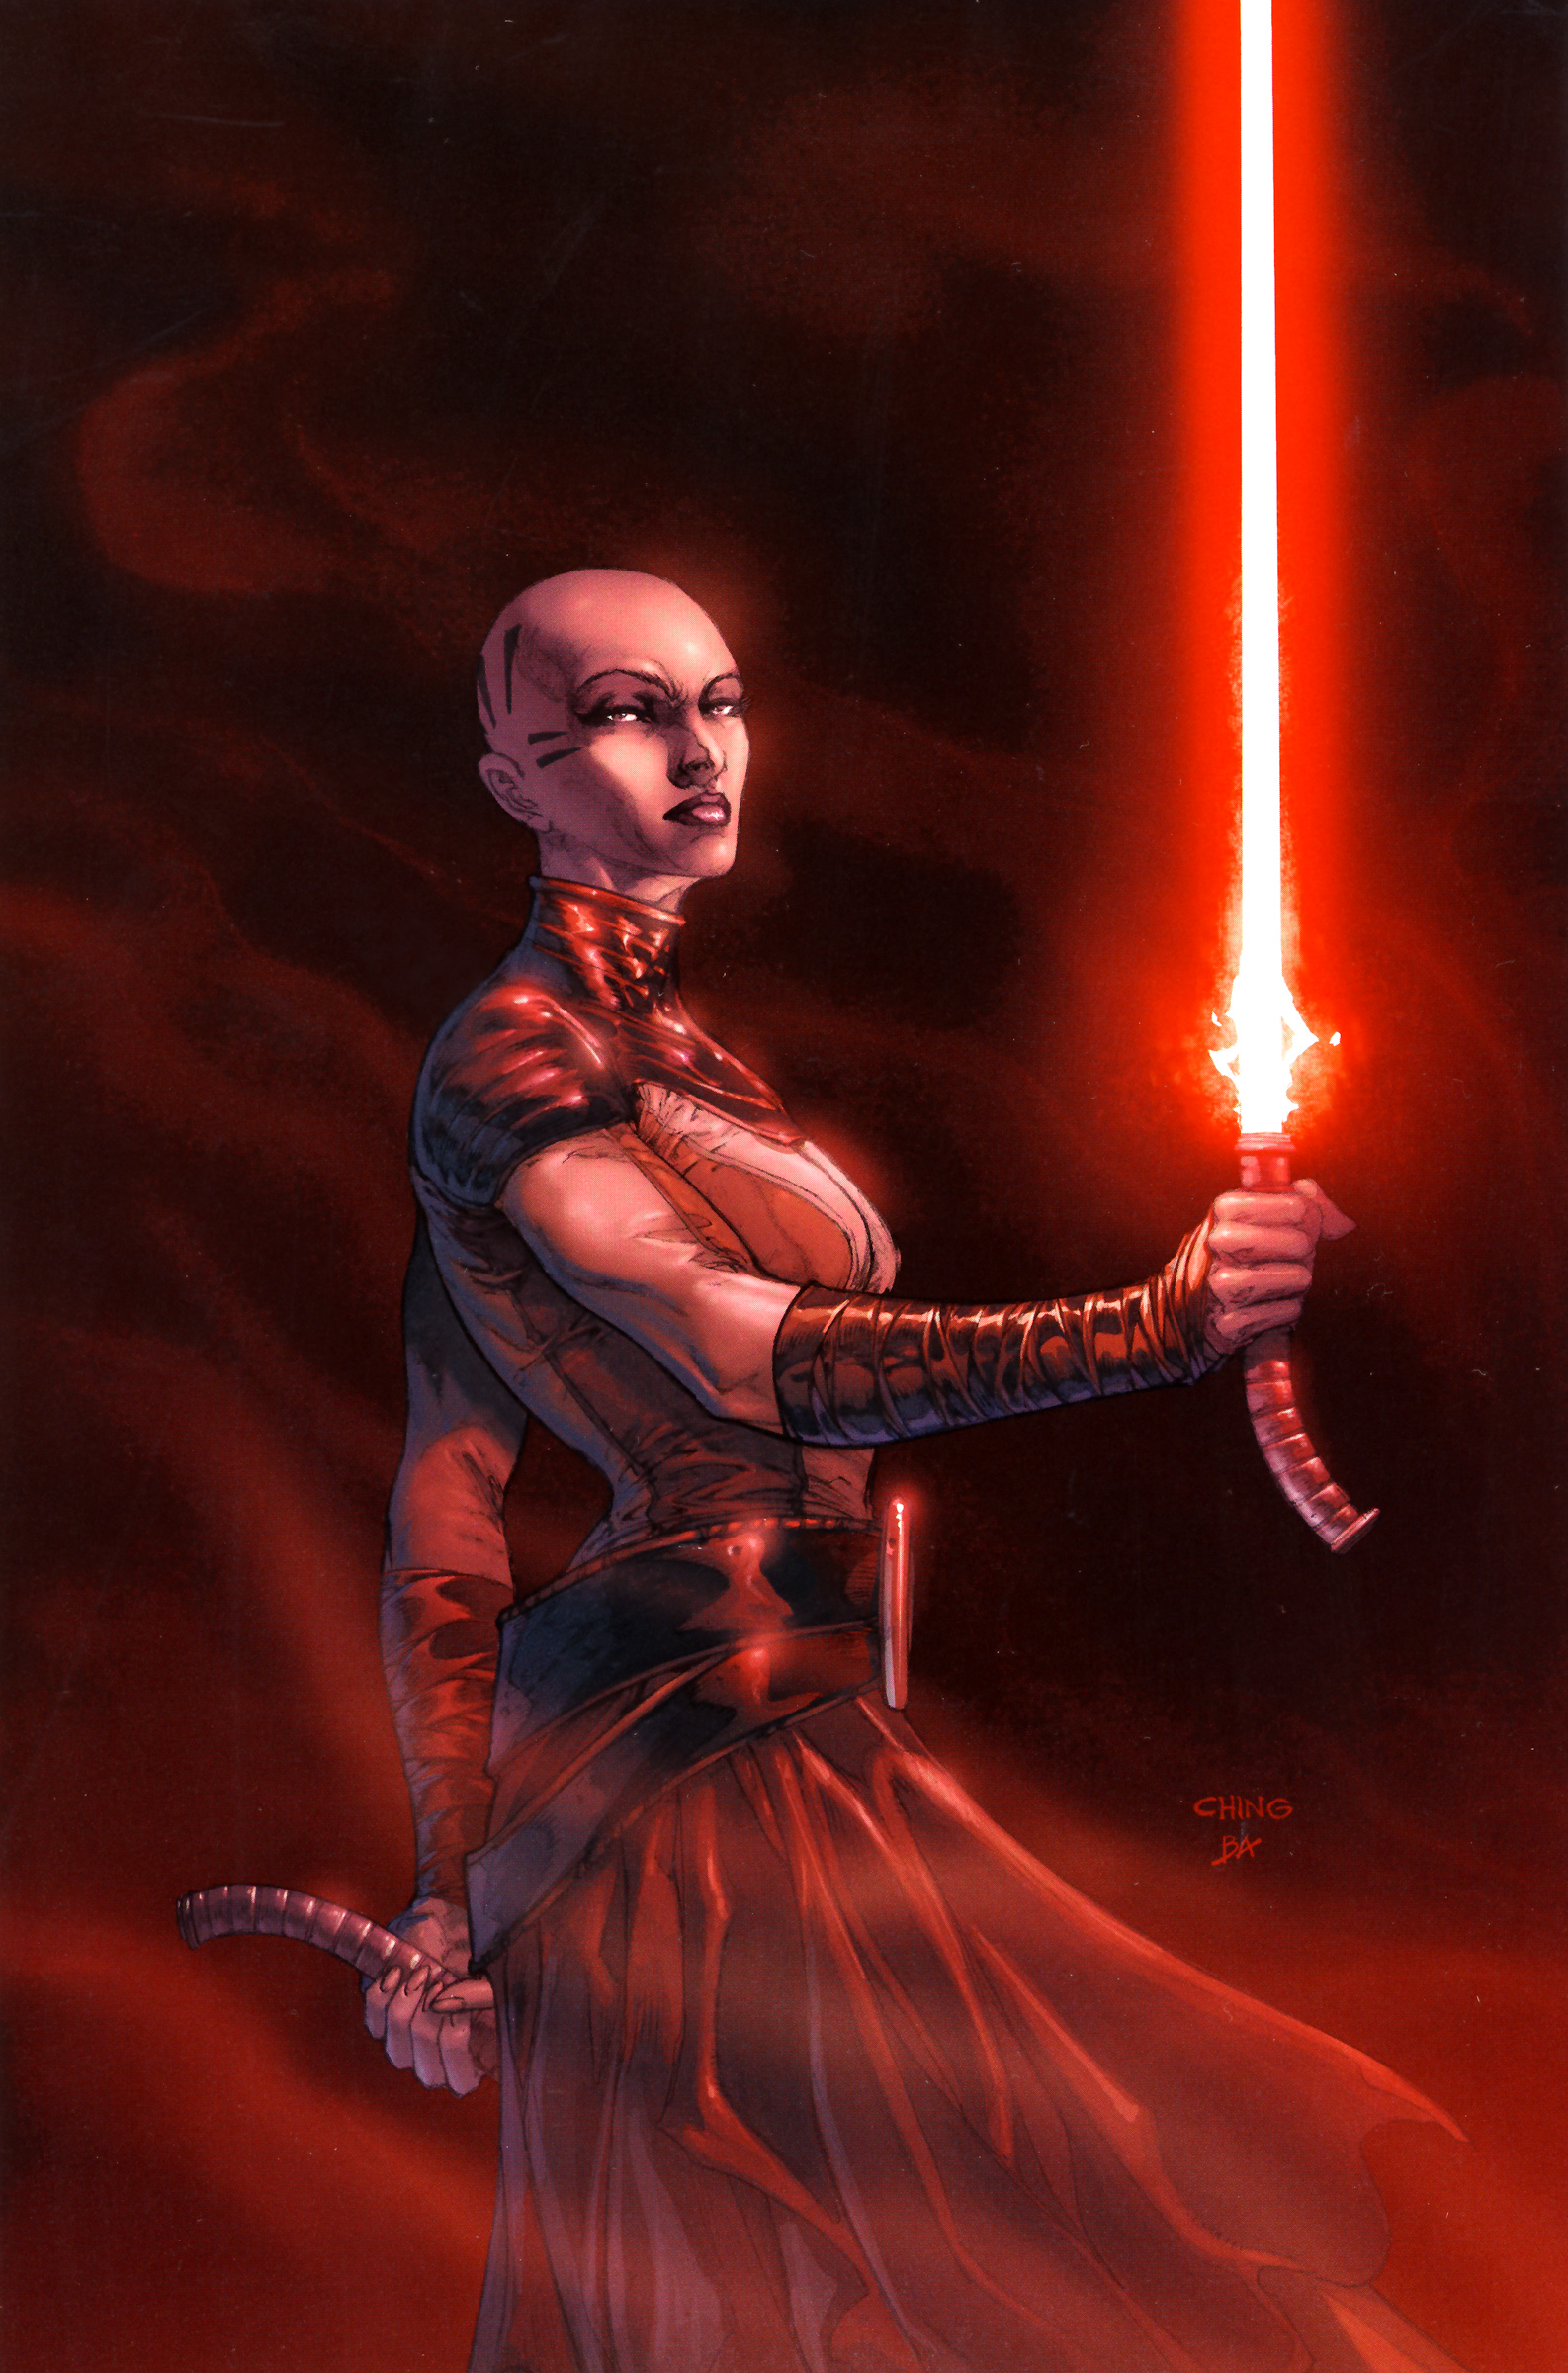 Asajj Ventress